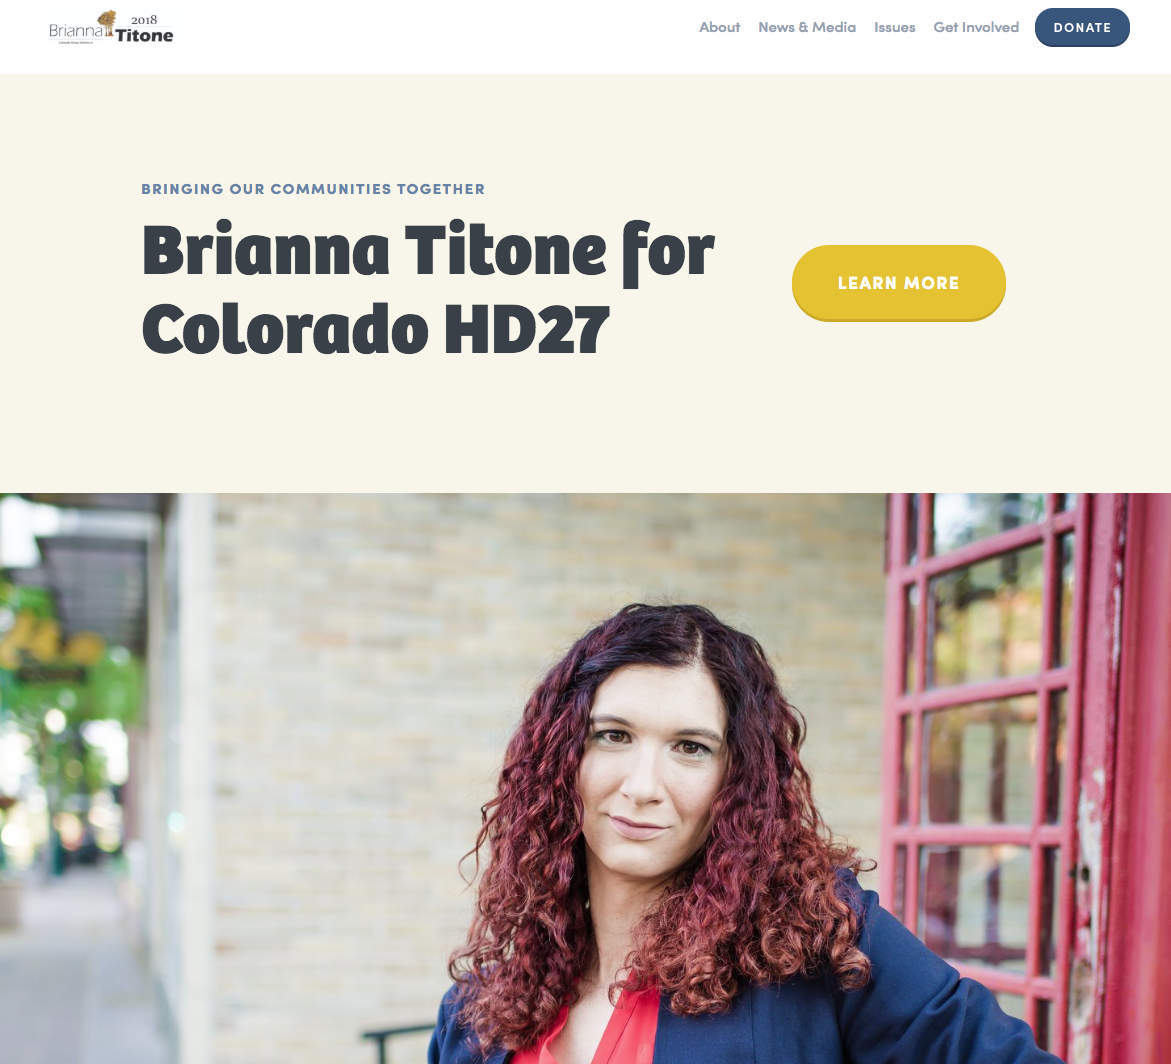 Homepage for Brianna Titone's website. After winning her election, she transformed her site into a place where she communicates with her constituents.